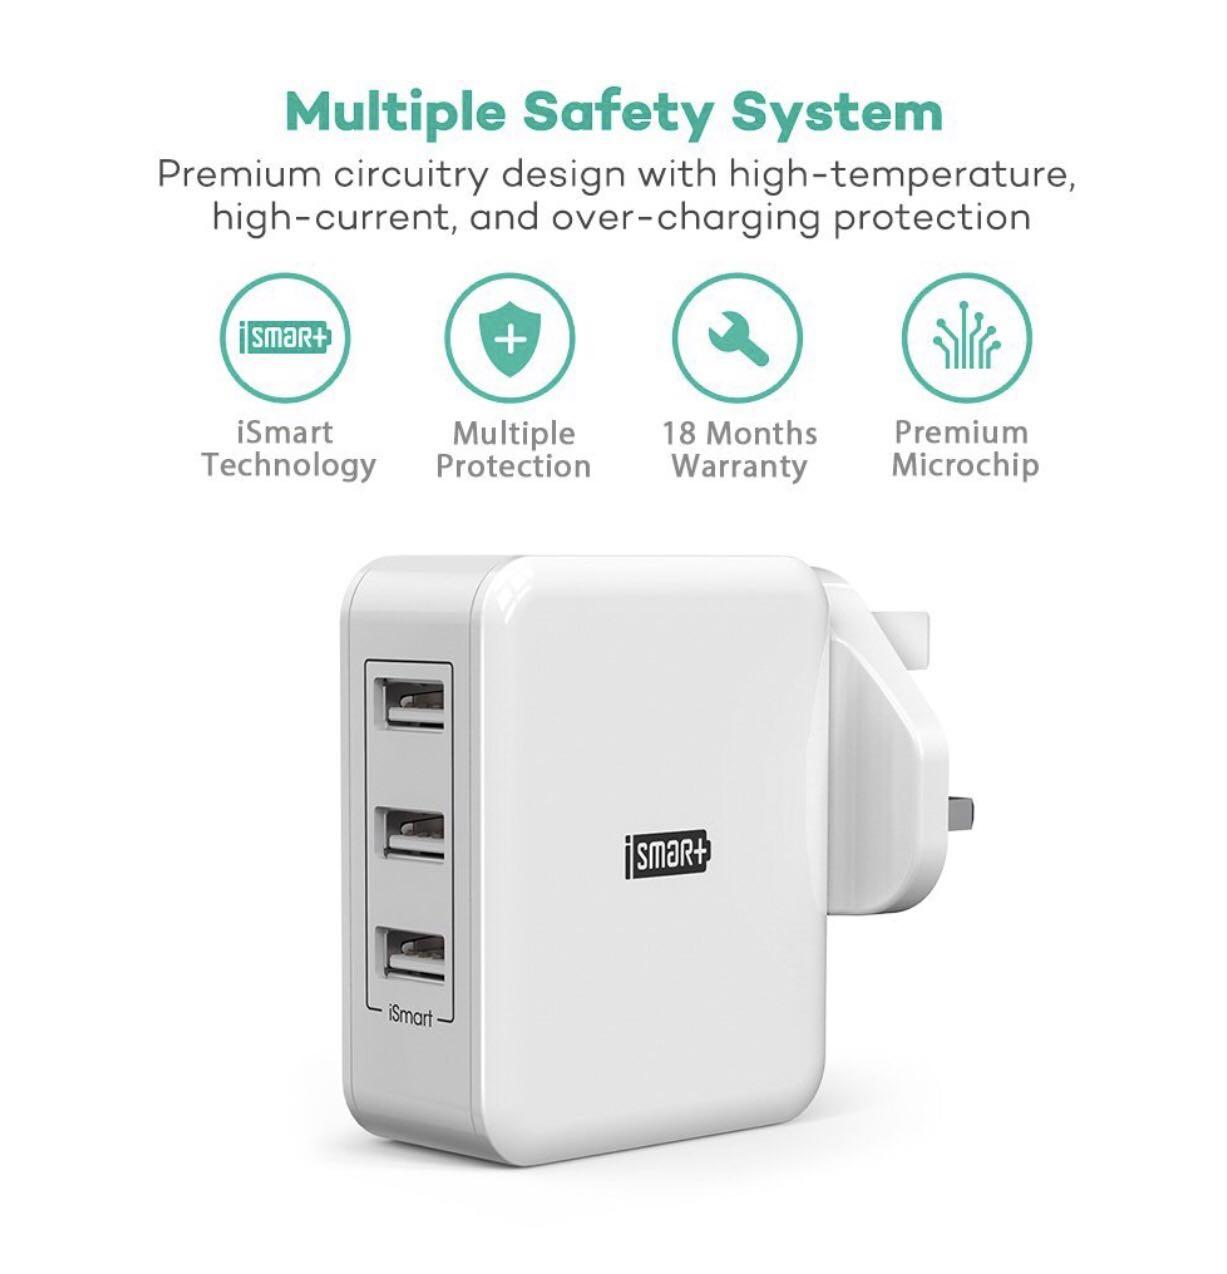 RAVPower USB Charger Plug 30W Fast Chargers 6A 3-Port Mains Wall Charger Power Adapters with iSmart 2.0 – White